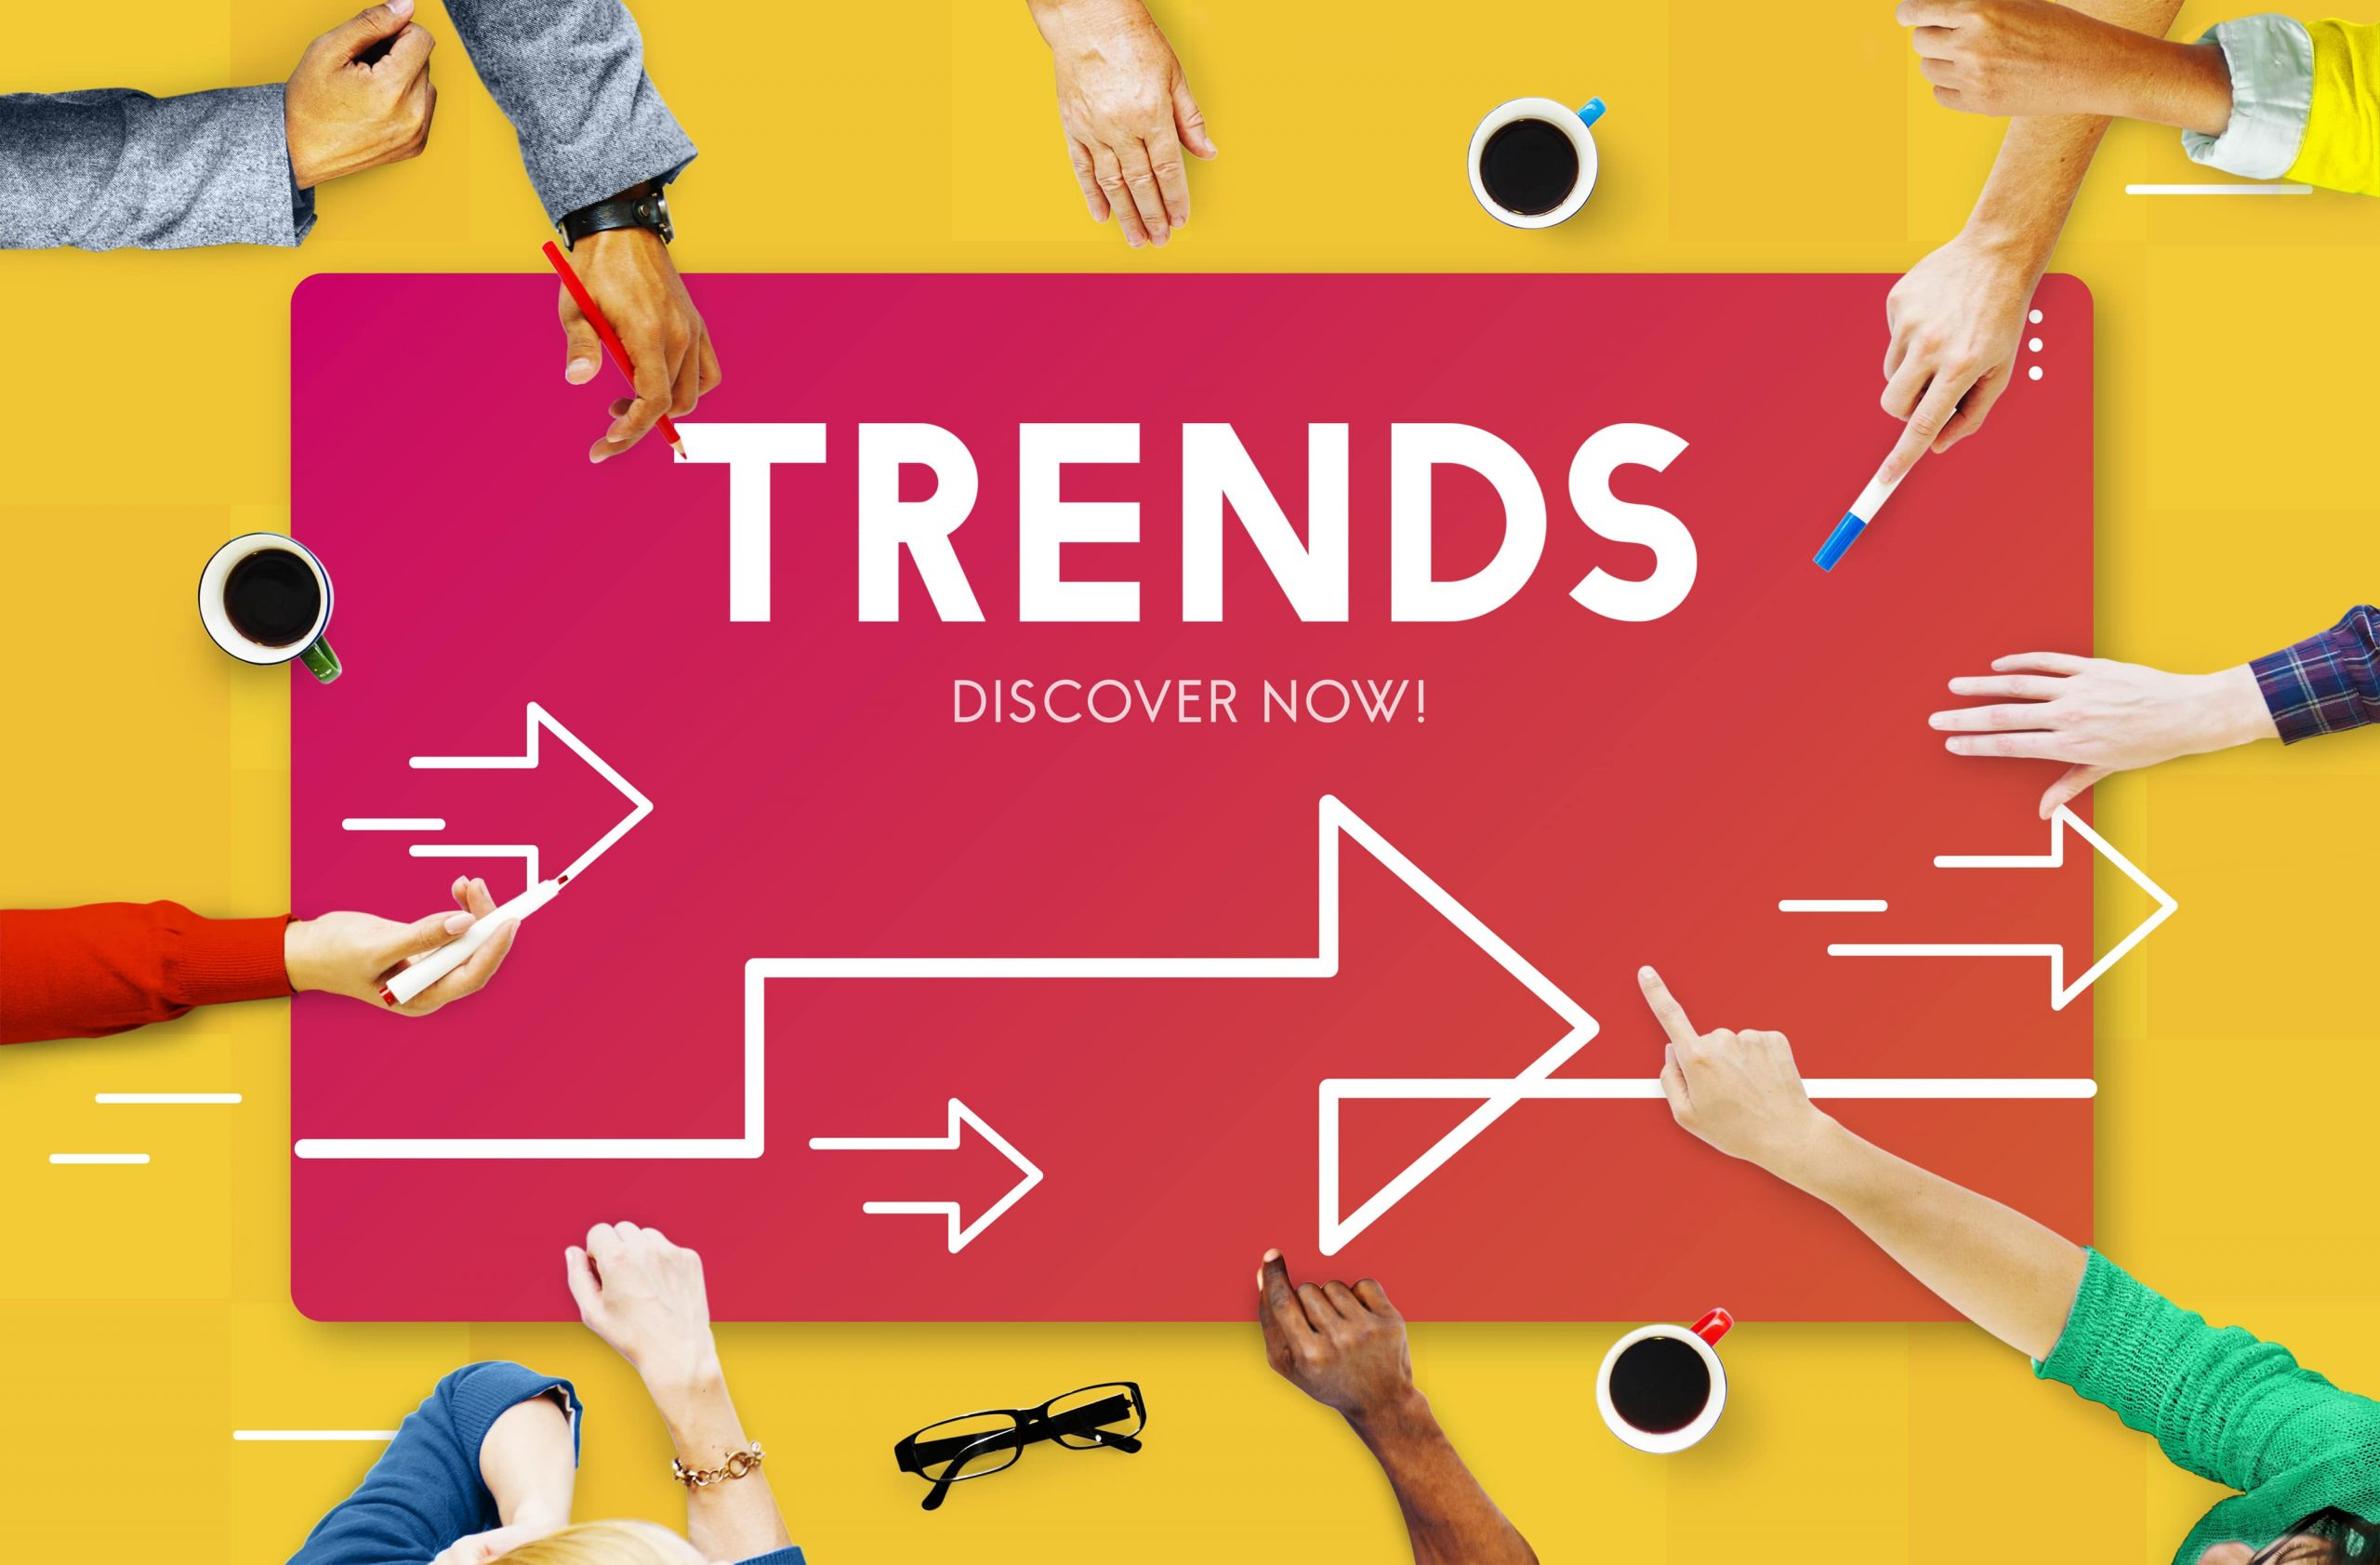 socialbakers-q3-social-media-trends-report-highlights-slow-return-to-normalcy-in-digital-space